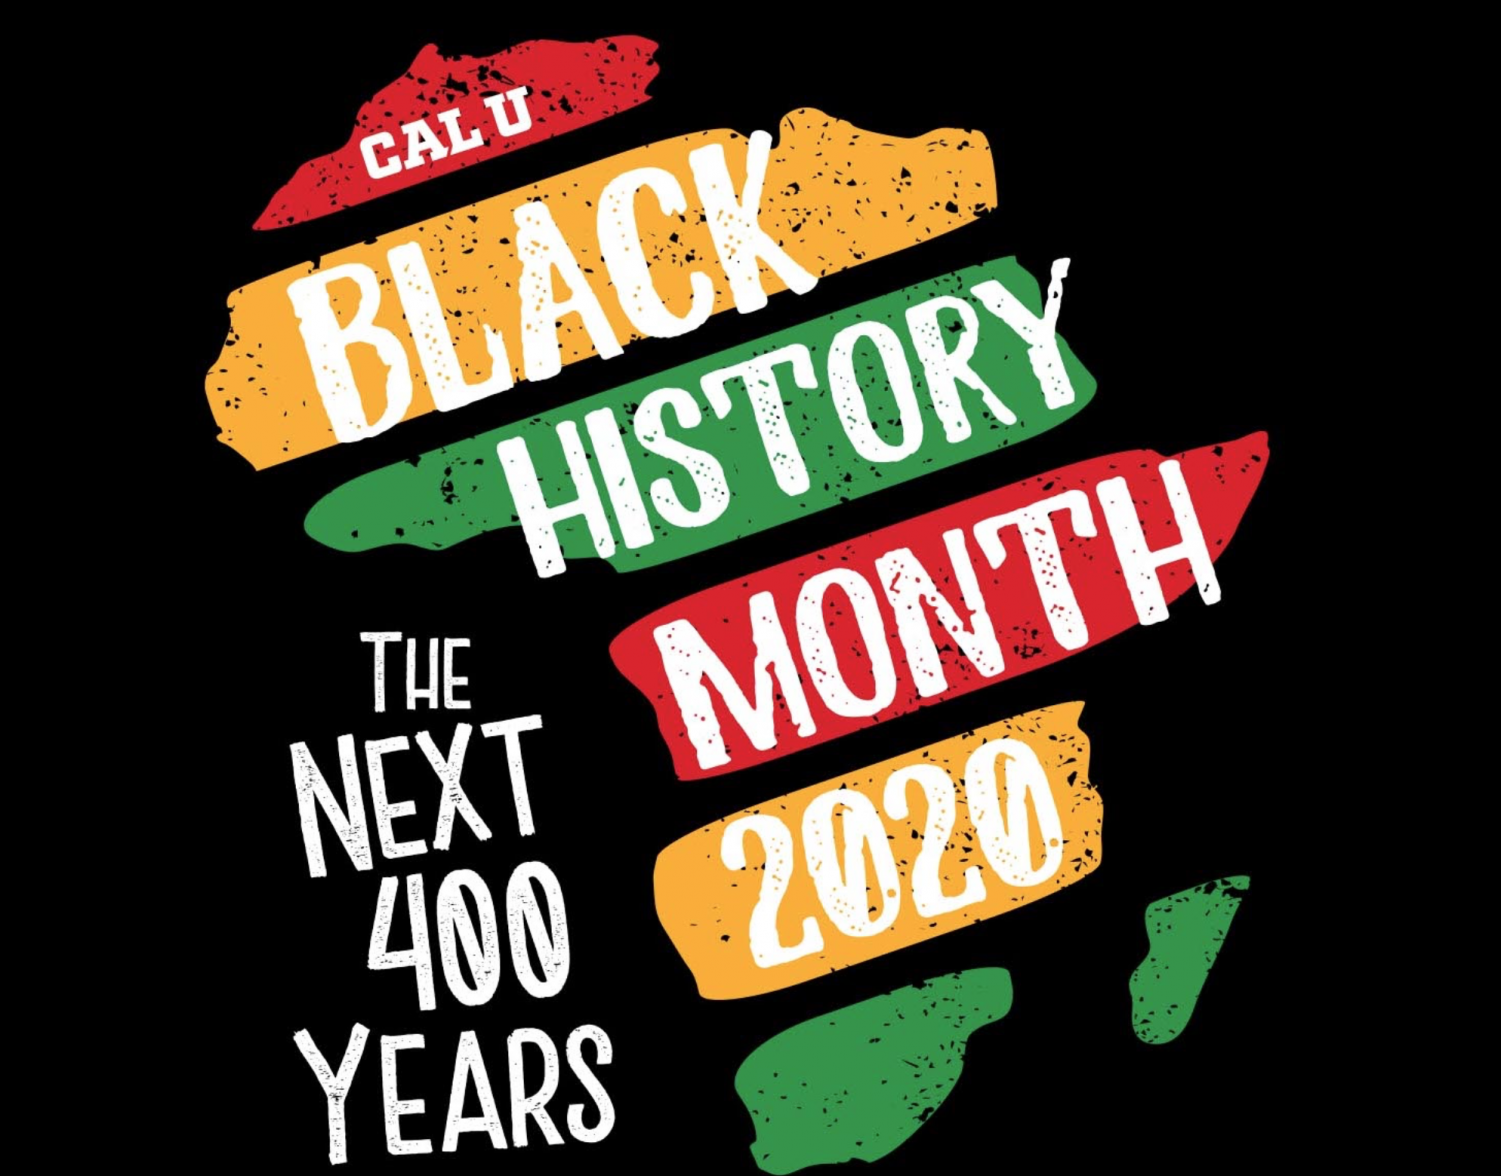 The theme for the 2020 celebration of Cal U's Black History Month is 'The Next 400 Years: Recognition, Restoration, and Resilience.'